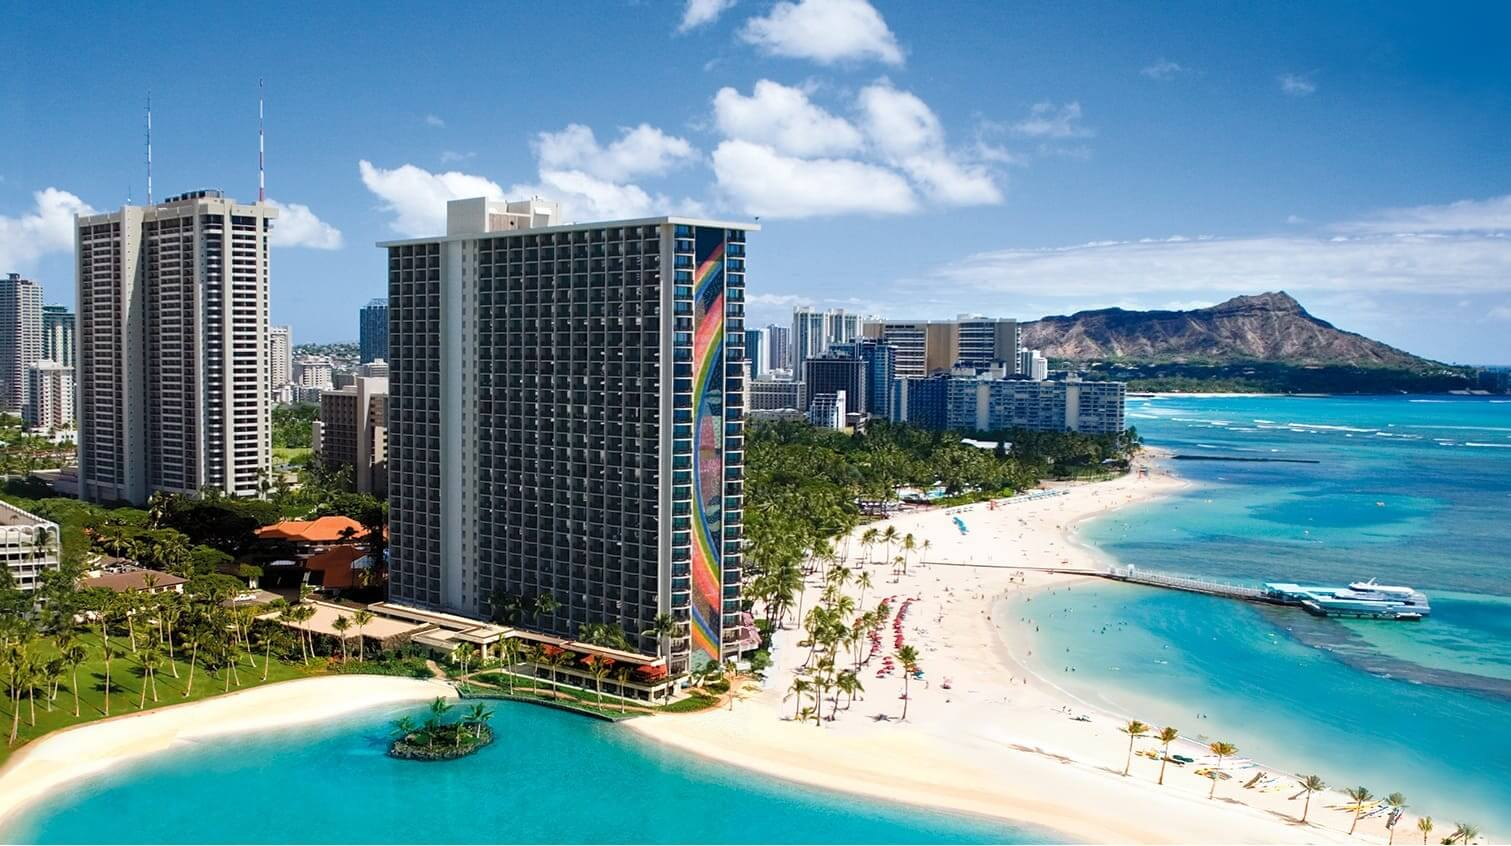 Hilton Hawaiian Village hotel workers will vote on new union contract tomorrow